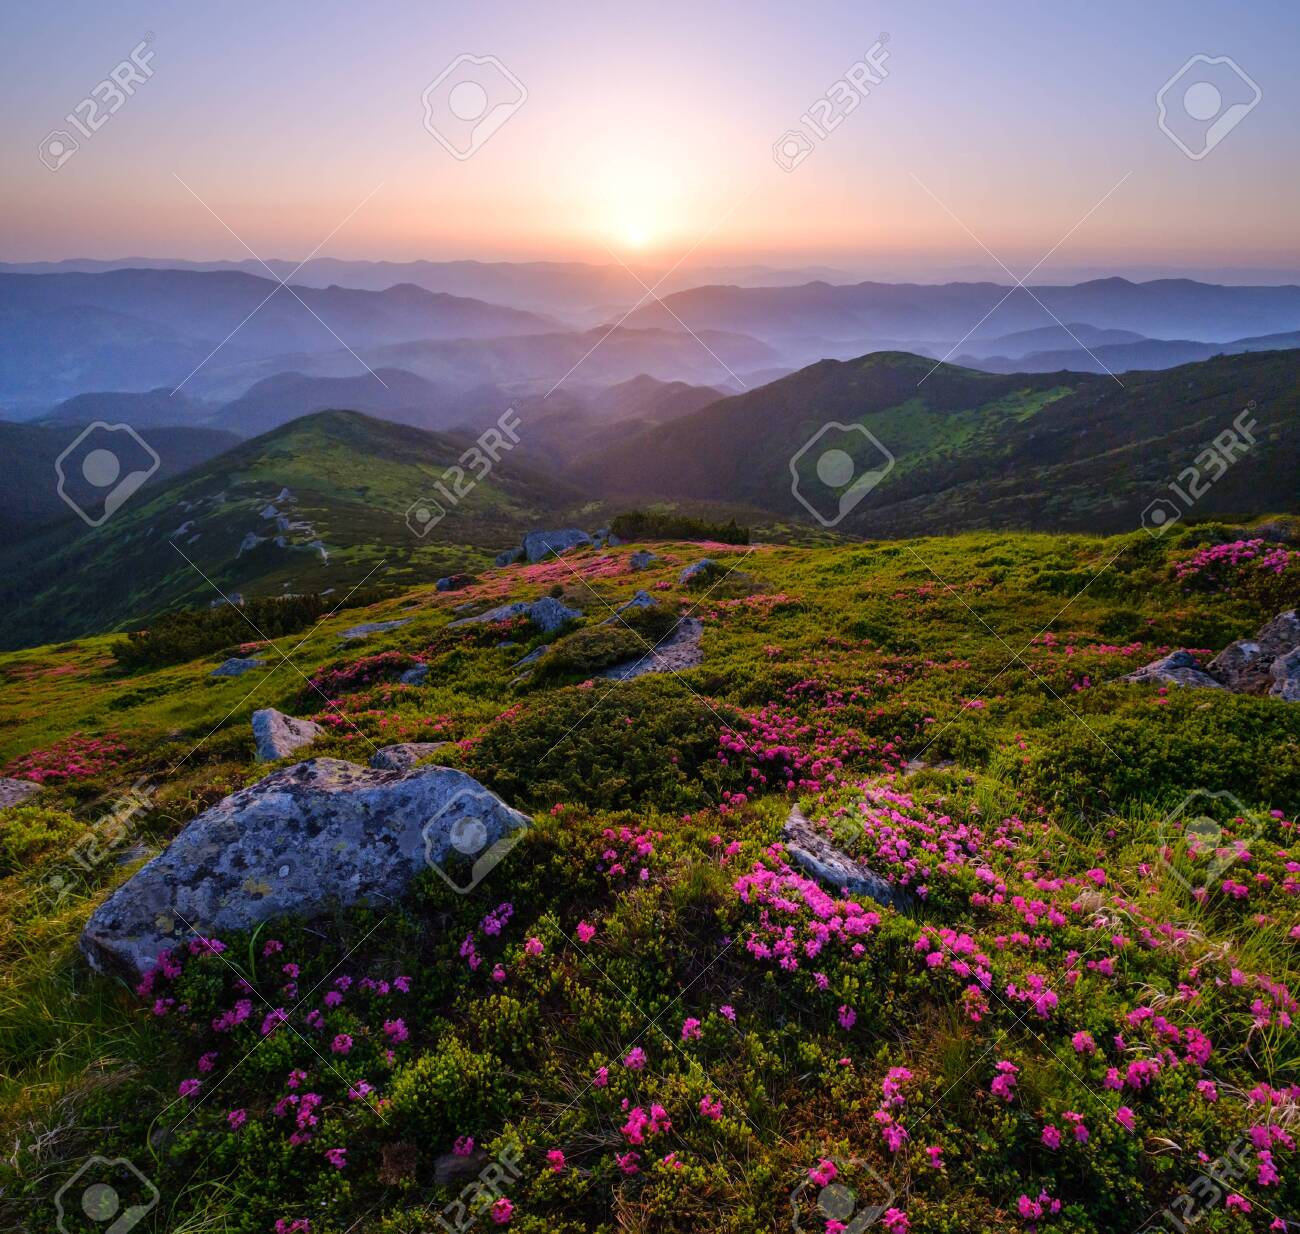 Pink rose rhododendron flowers on early morning summer mountain slope, Carpathian, Chornohora, Ukraine. - 129714846